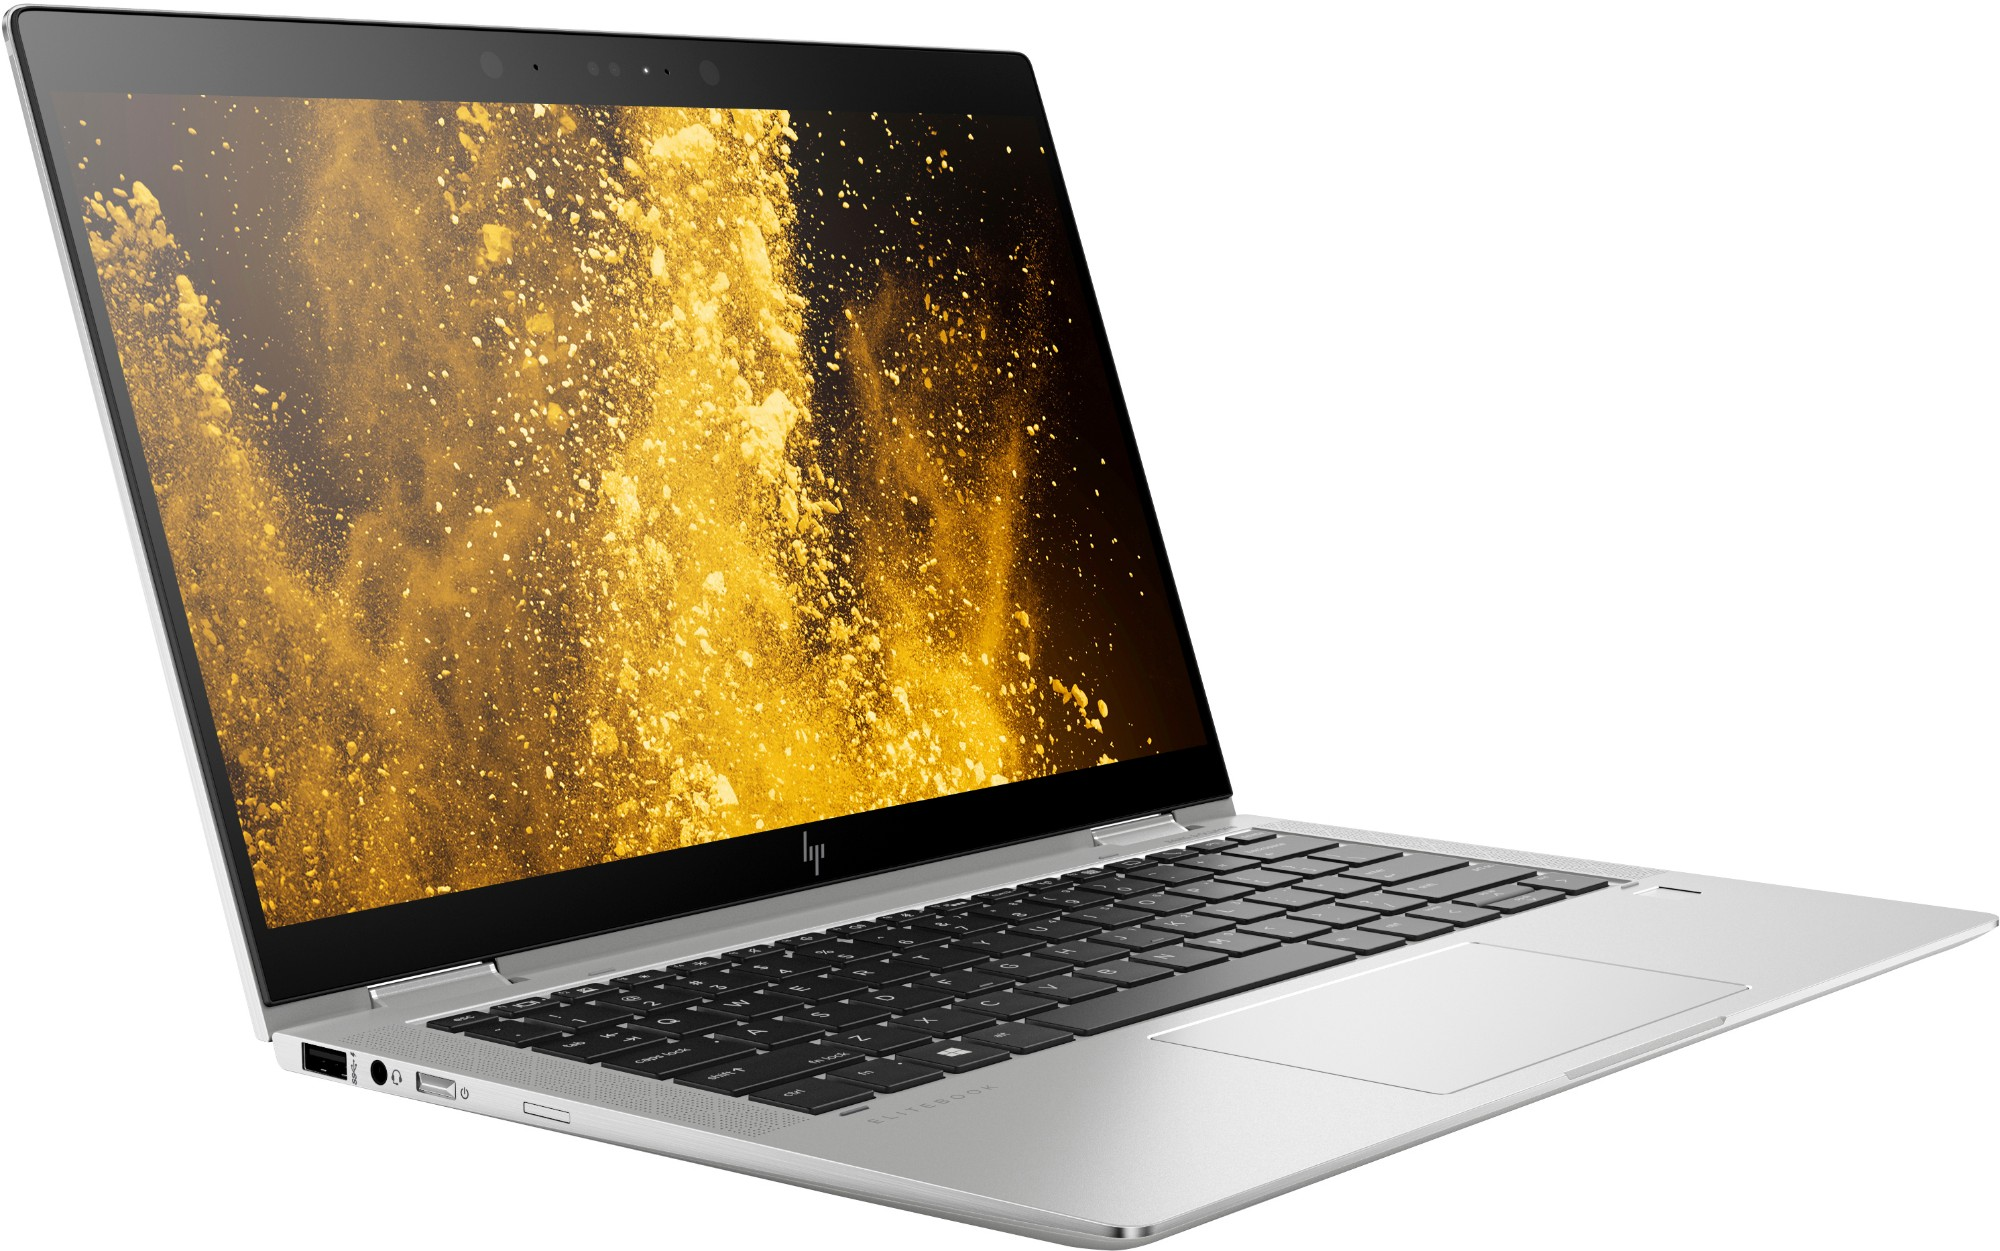 "HP EliteBook x360 1030 G3 Silver Hybrid (2-in-1) 33.8 cm (13.3"") 1920 x 1080 pixels Touchscreen 1.90 GHz 8th gen Intel® Core™ i7 i7-8650U"